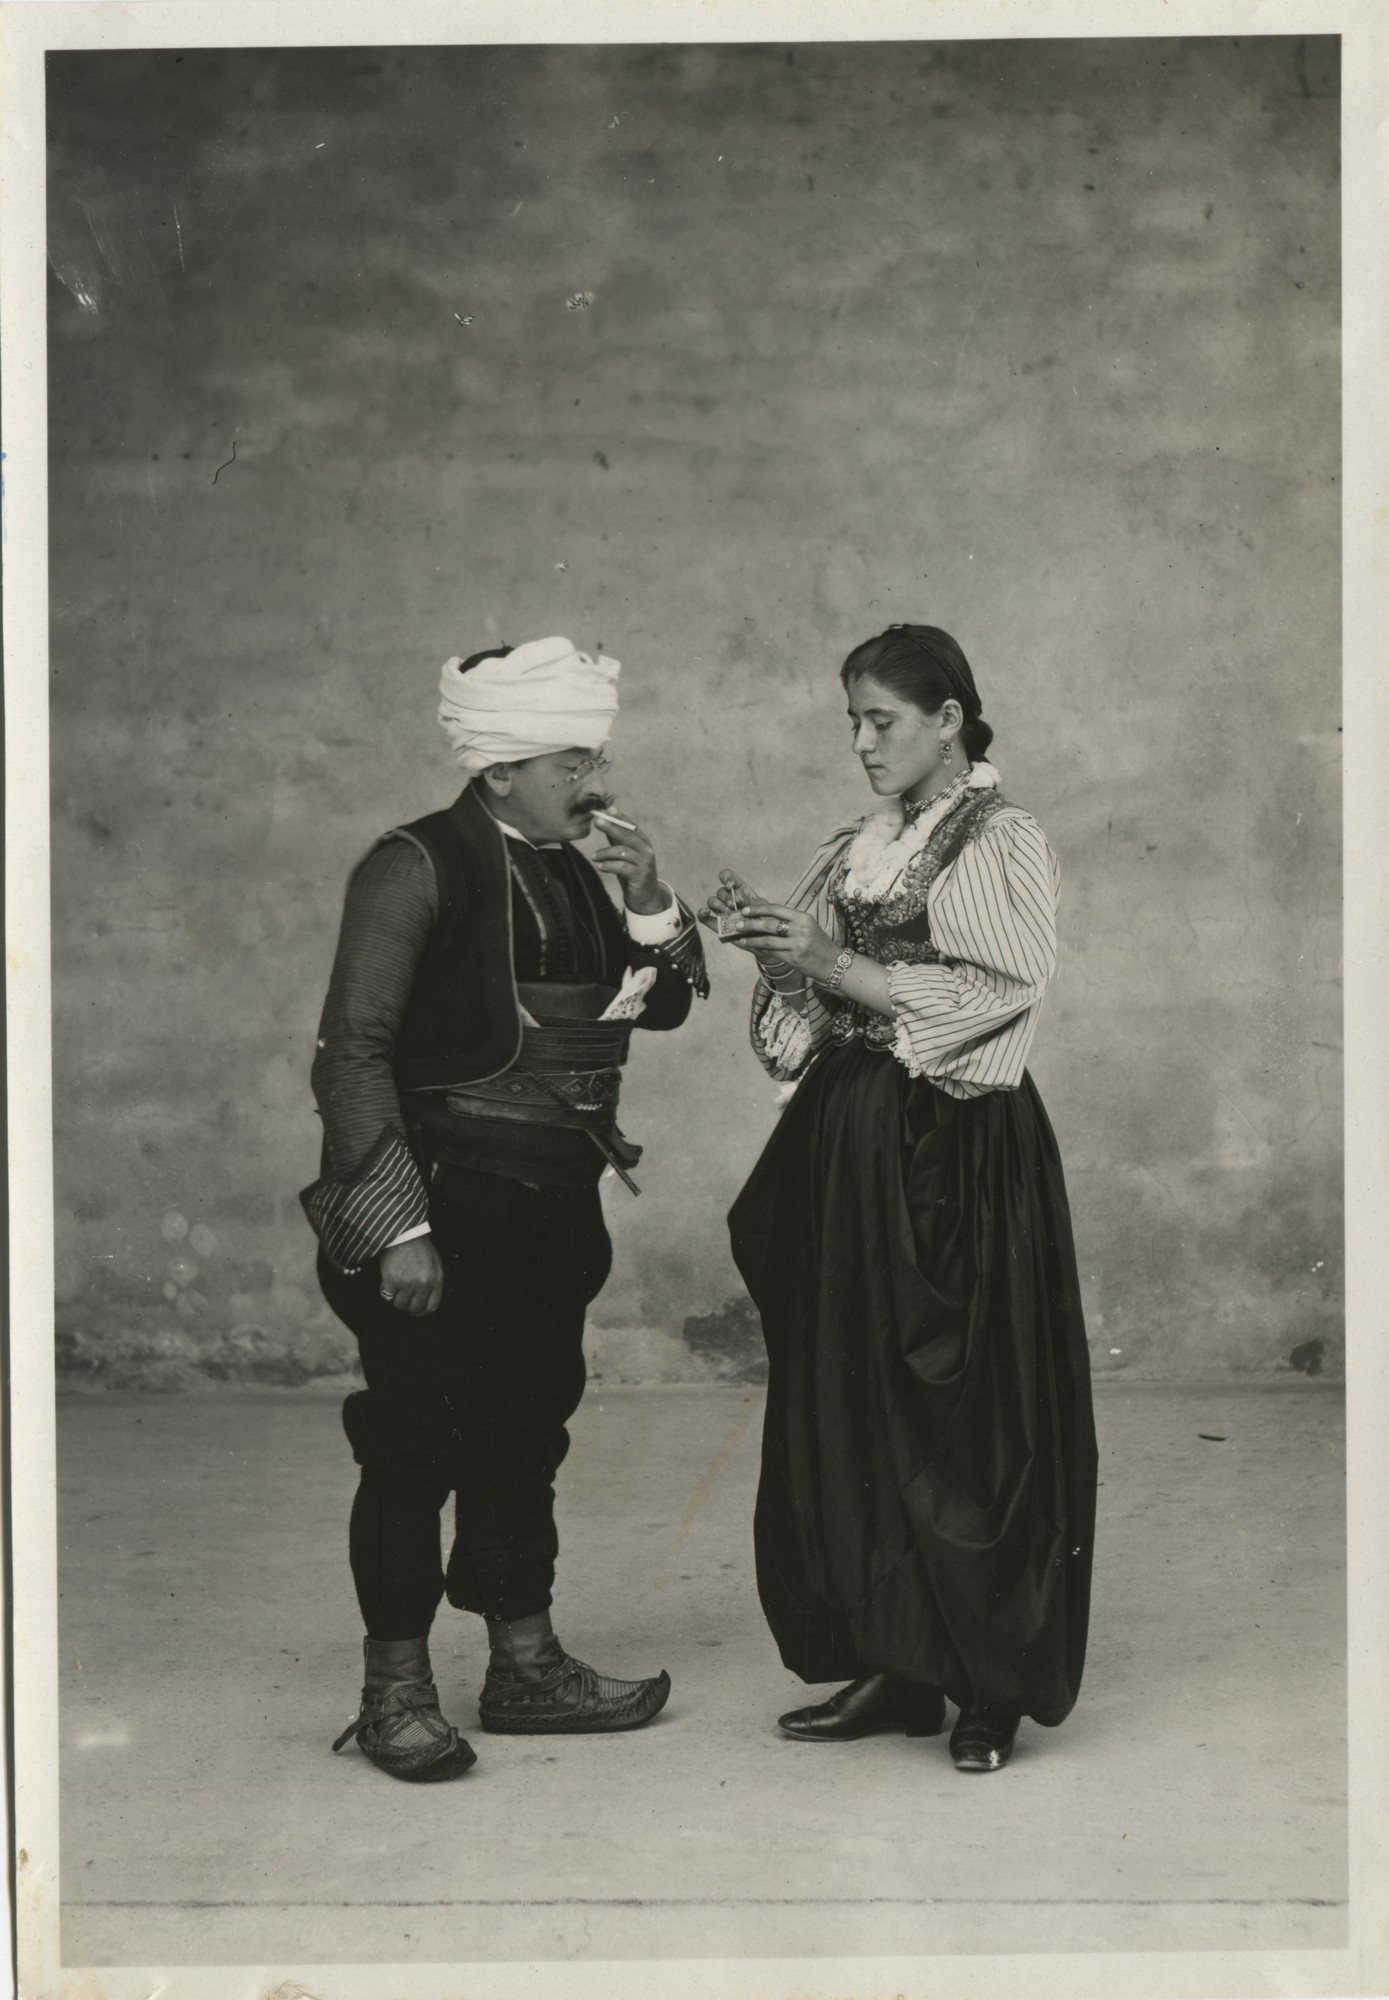 Portrait of a woman giving a man a light, © The Historical Archive of Sarajevo